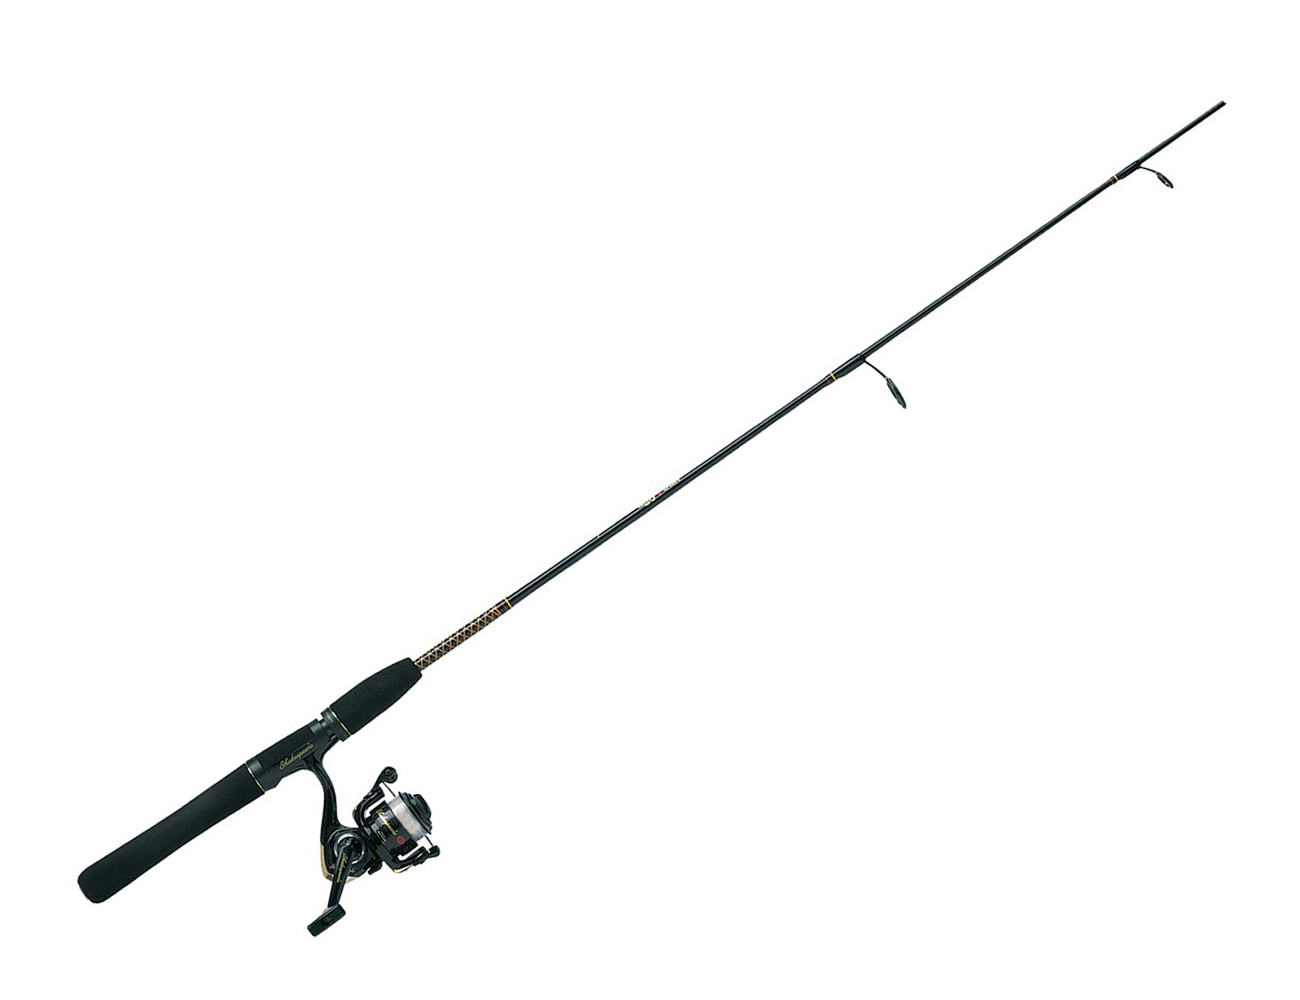 Fishing Pole Fishing Rod Clipart Kiaavto-Fishing pole fishing rod clipart kiaavto 2 image-10